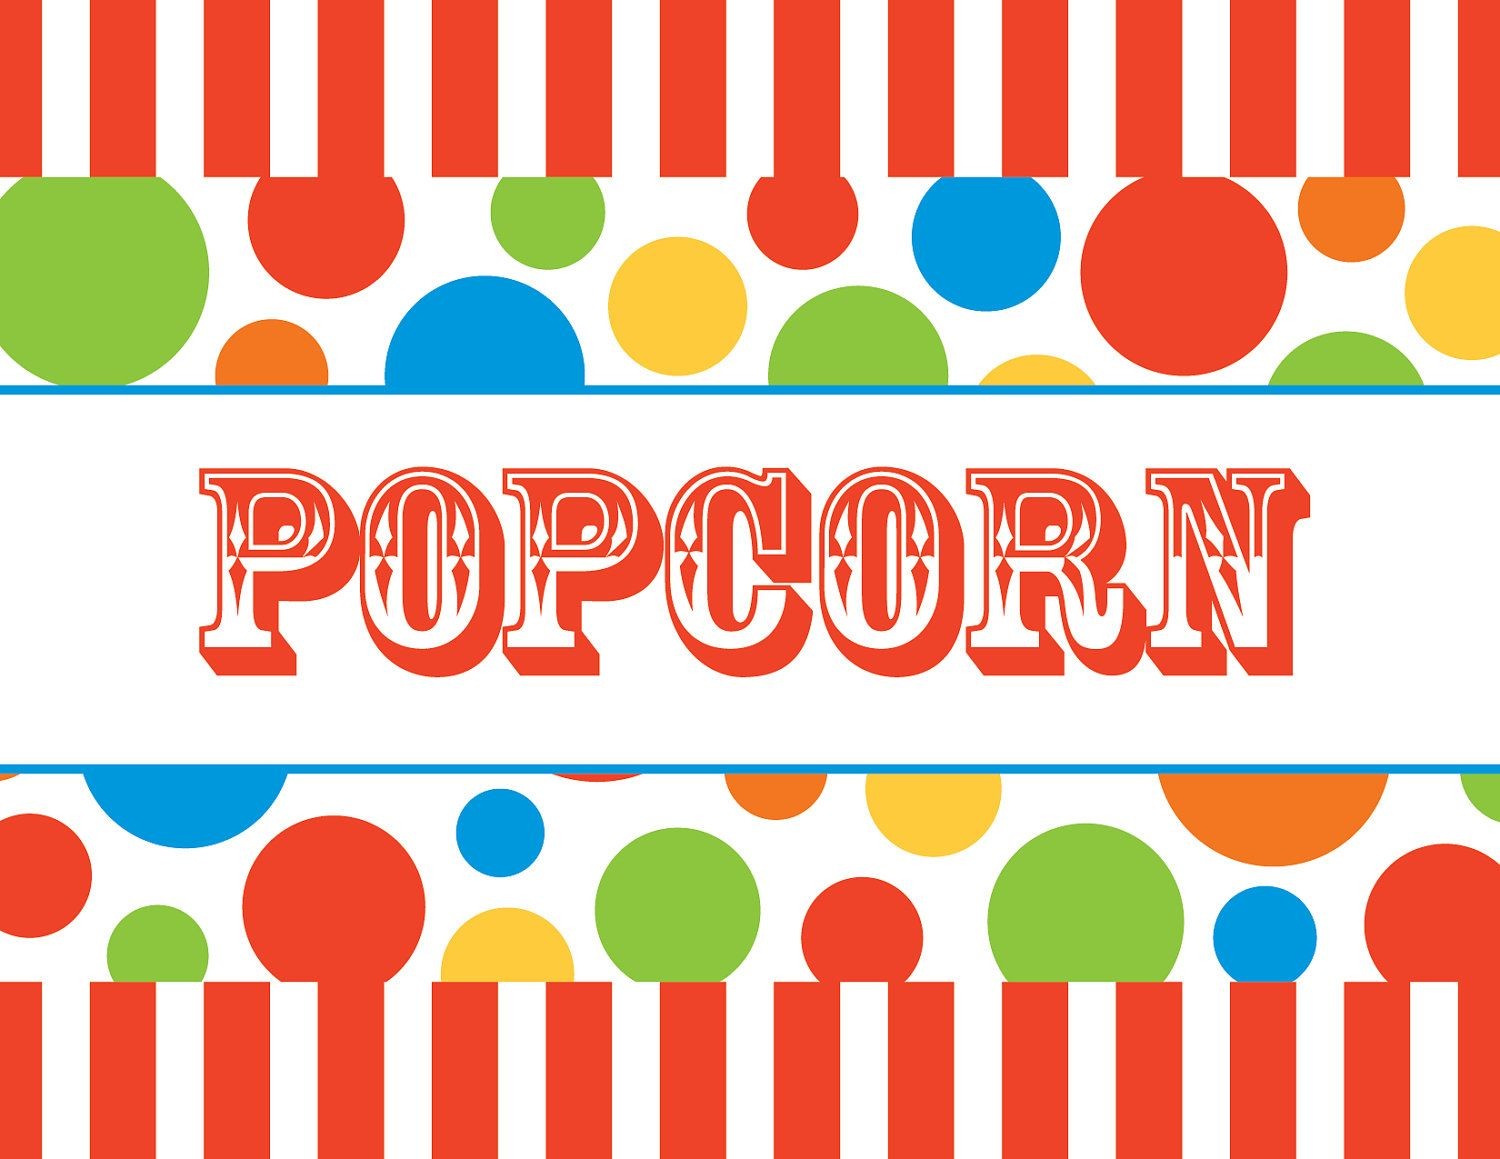 graphic relating to Popcorn Sign Printable called 7 Simplest Pictures of Circus Printable Food items Indicators - Circus